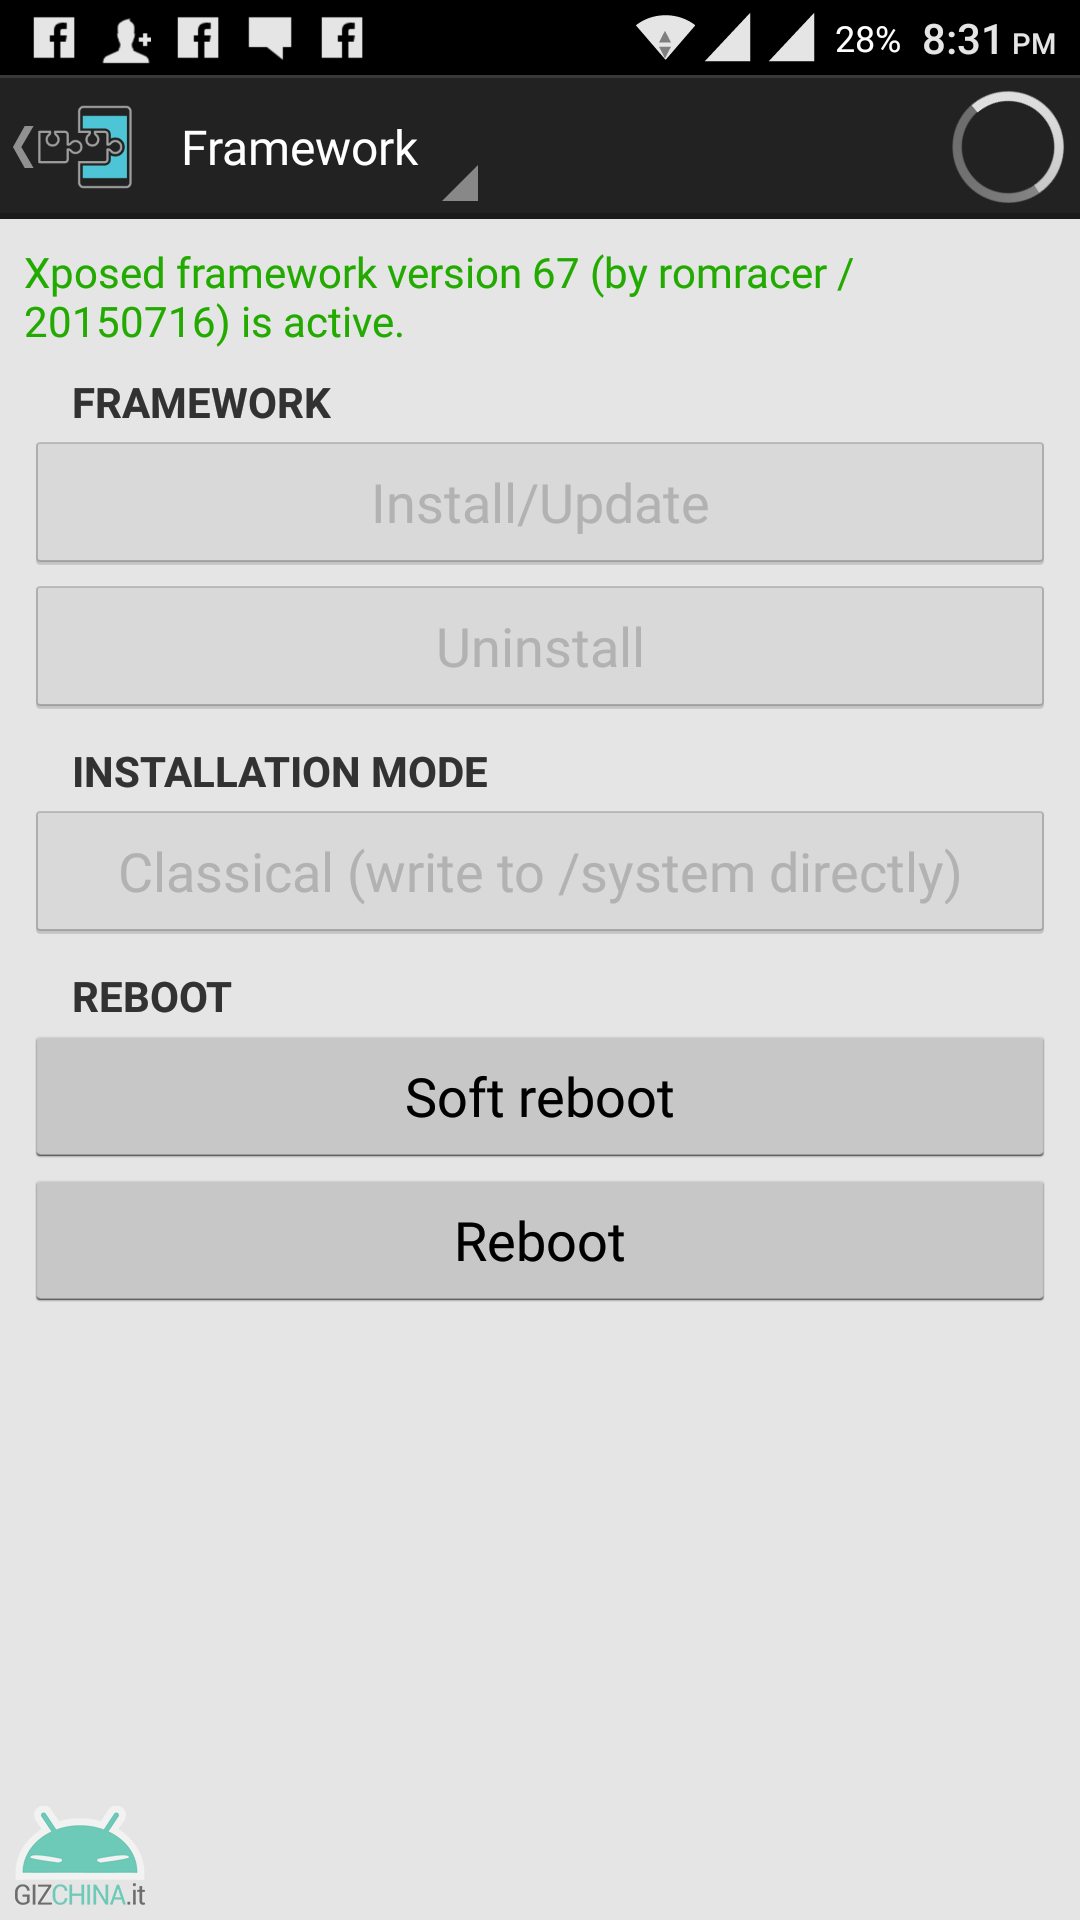 asus-zenfone-2-xposed-1.png